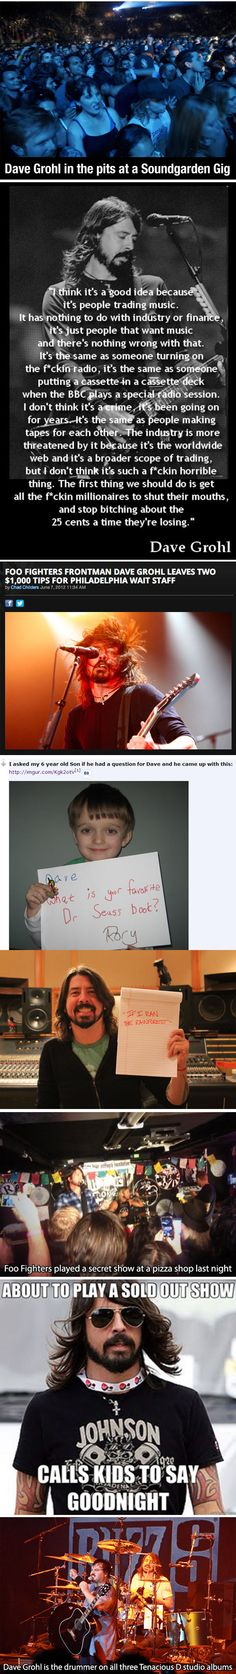 Why Dave Grohl Is Great